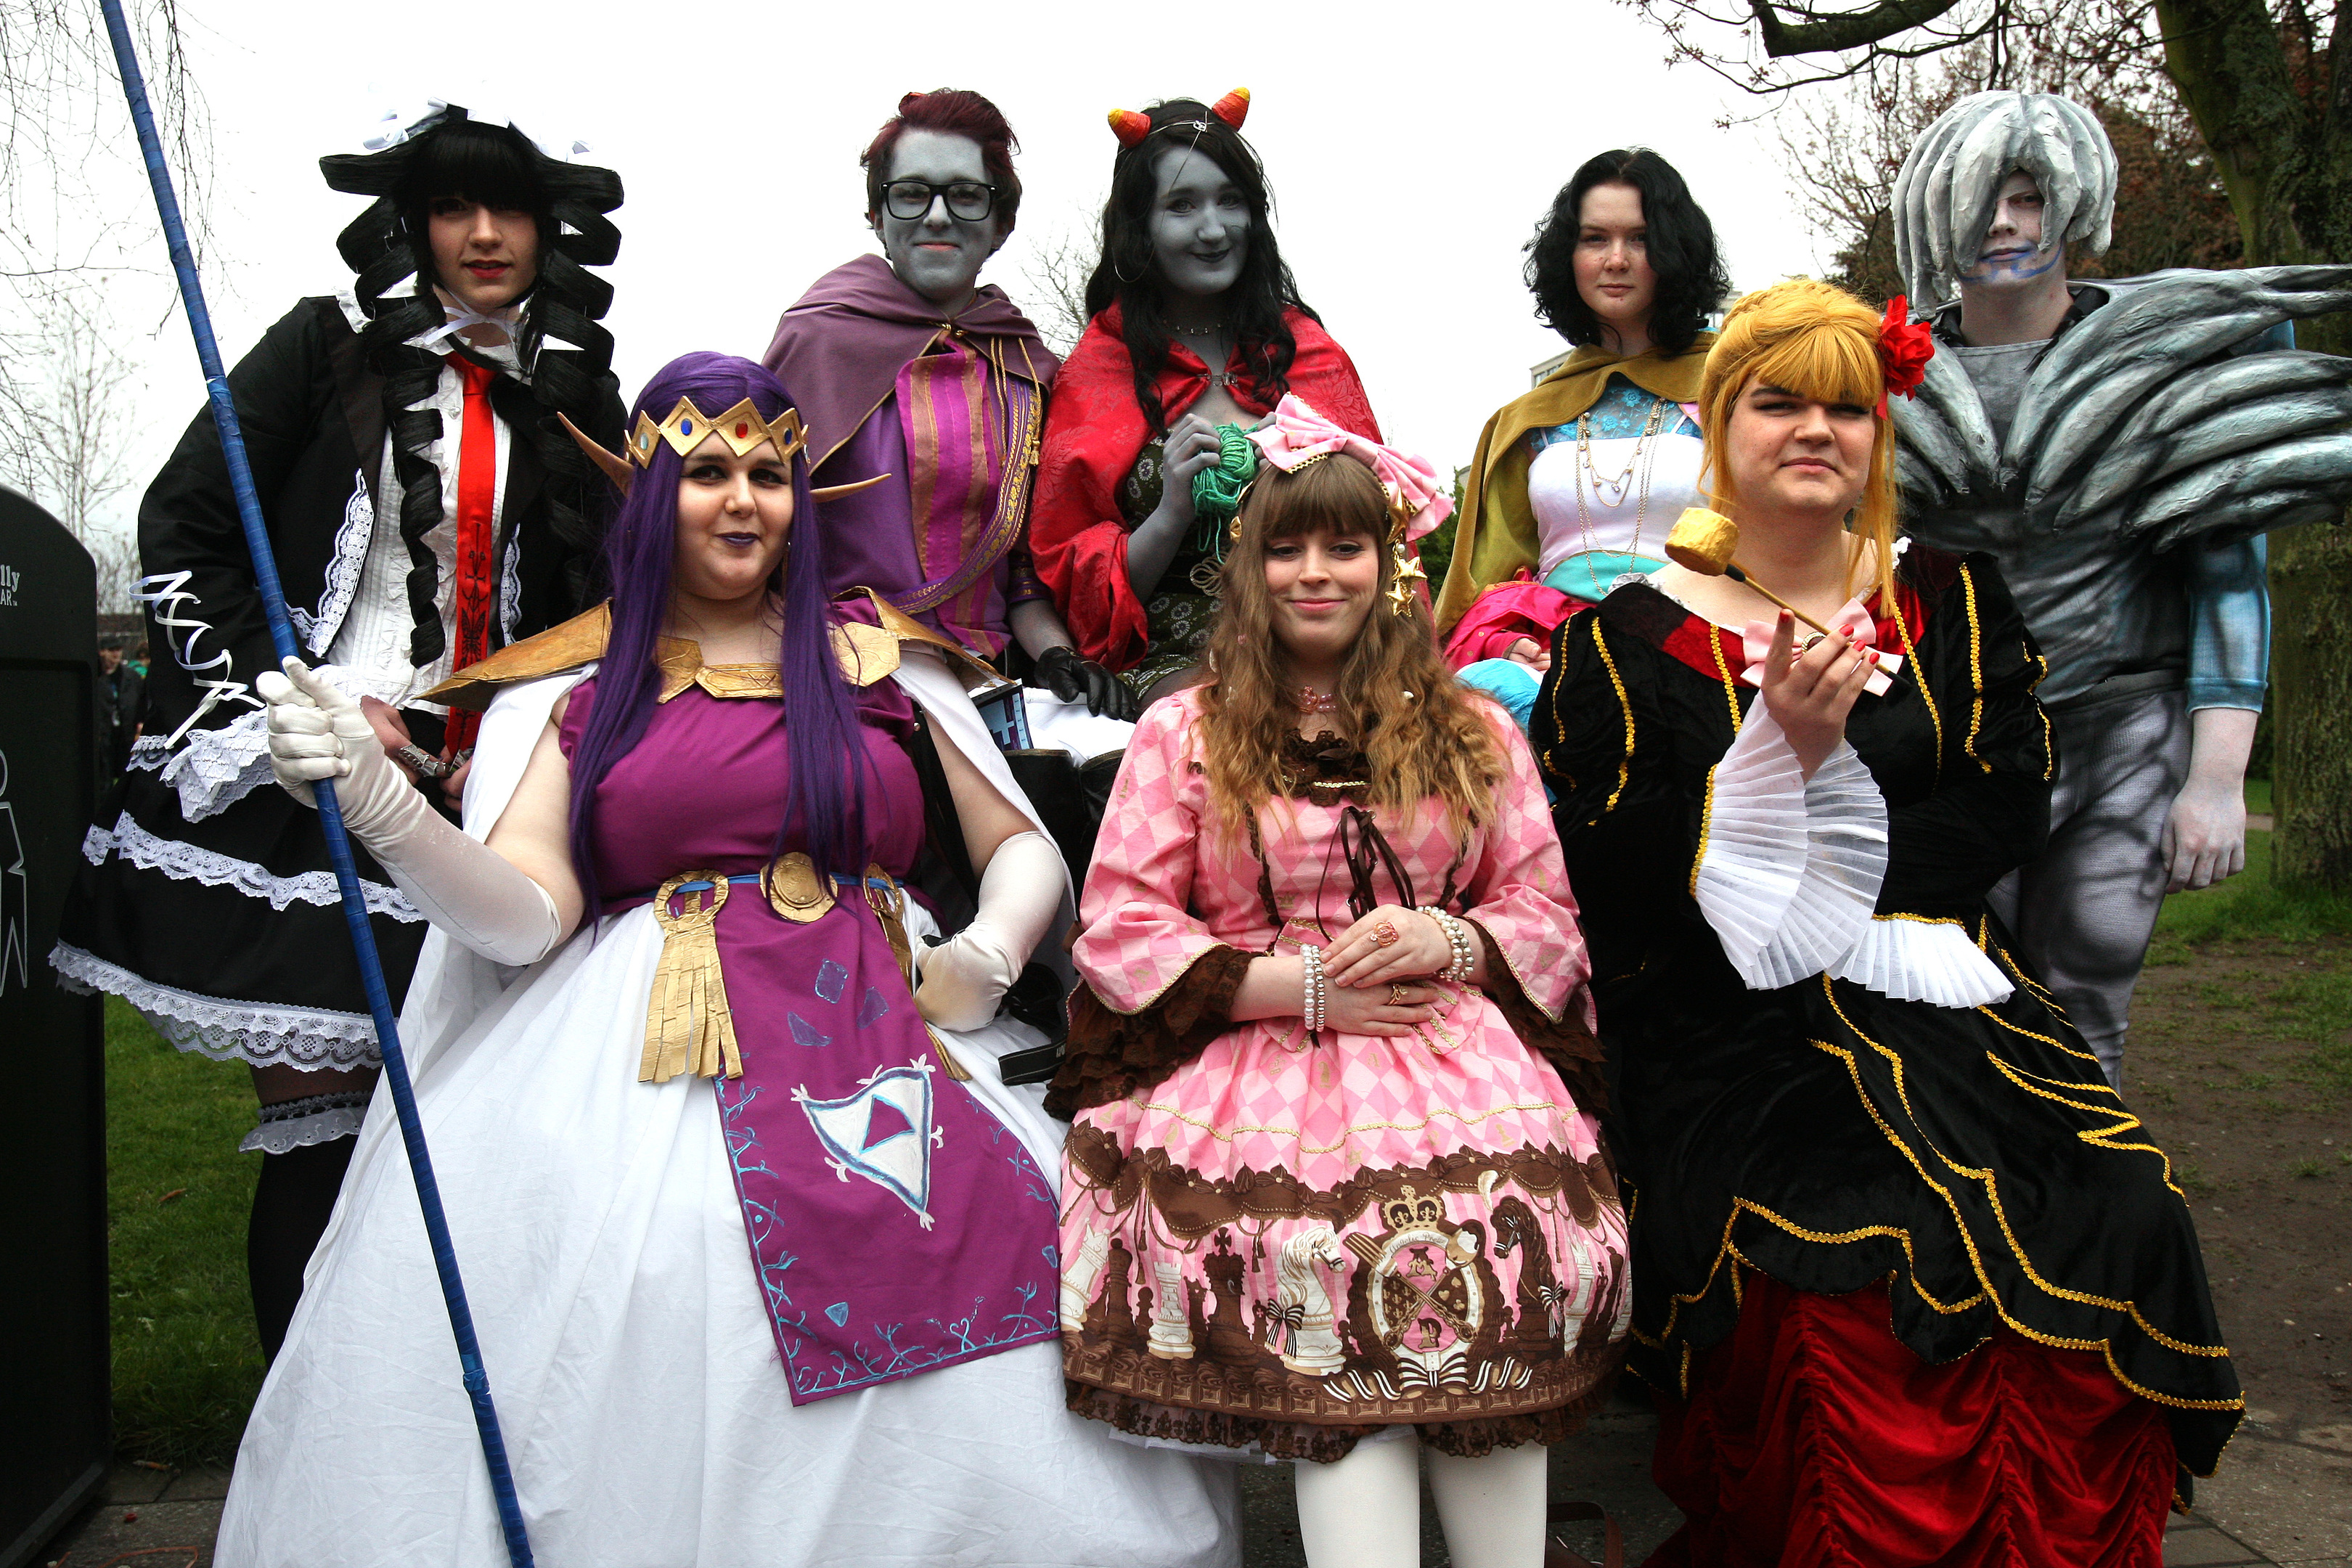 DeeCon attendees in costume at April's event.